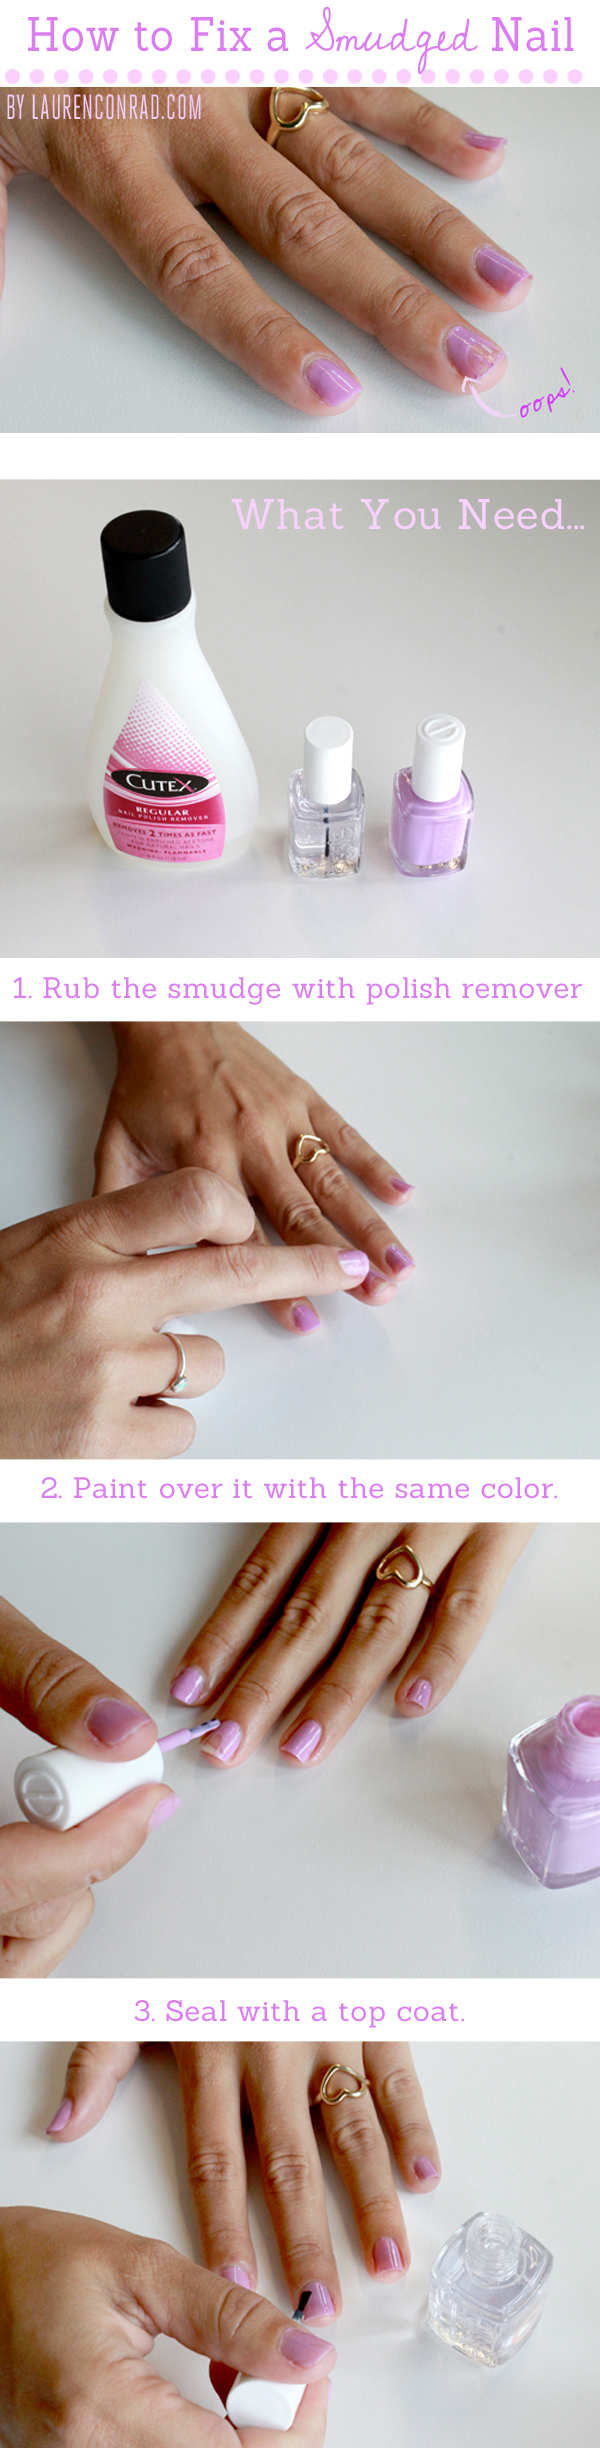 Beauty 911 How To Fix A Smudged Nail